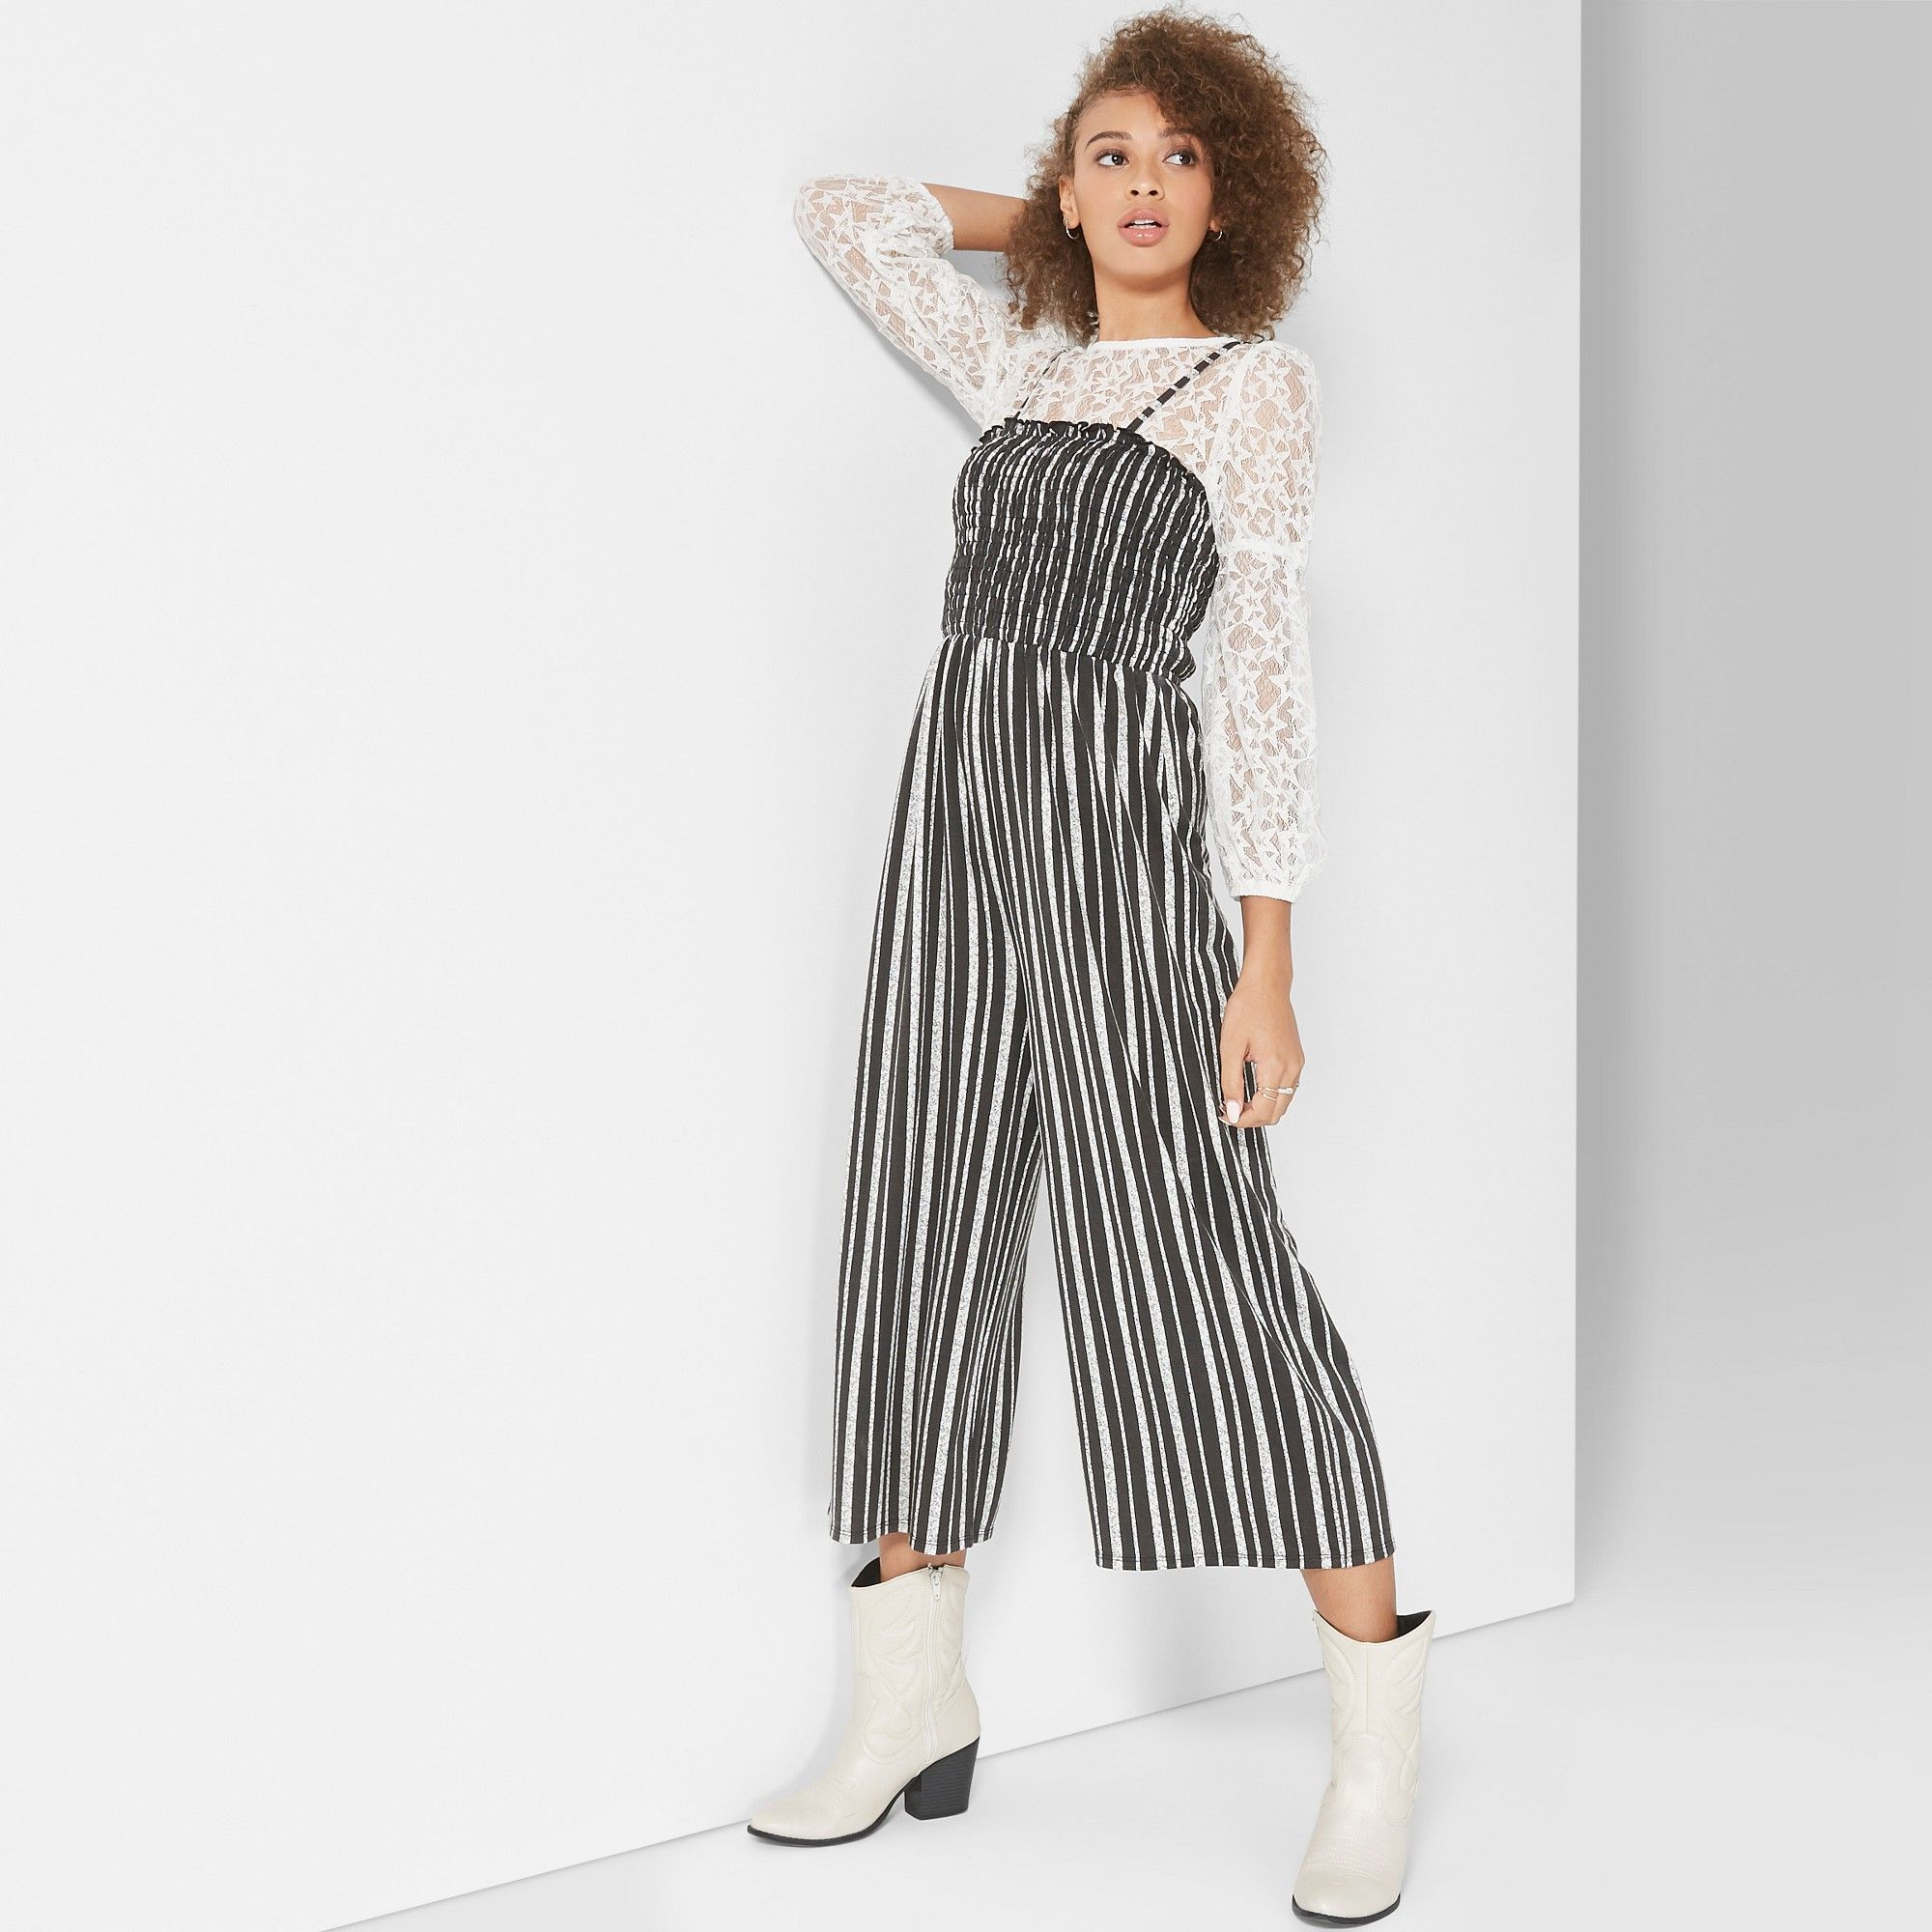 7ac8f676345 Women s Striped Strappy Knit Smocked Top Jumpsuit - Wild Fable Black White  Xxl